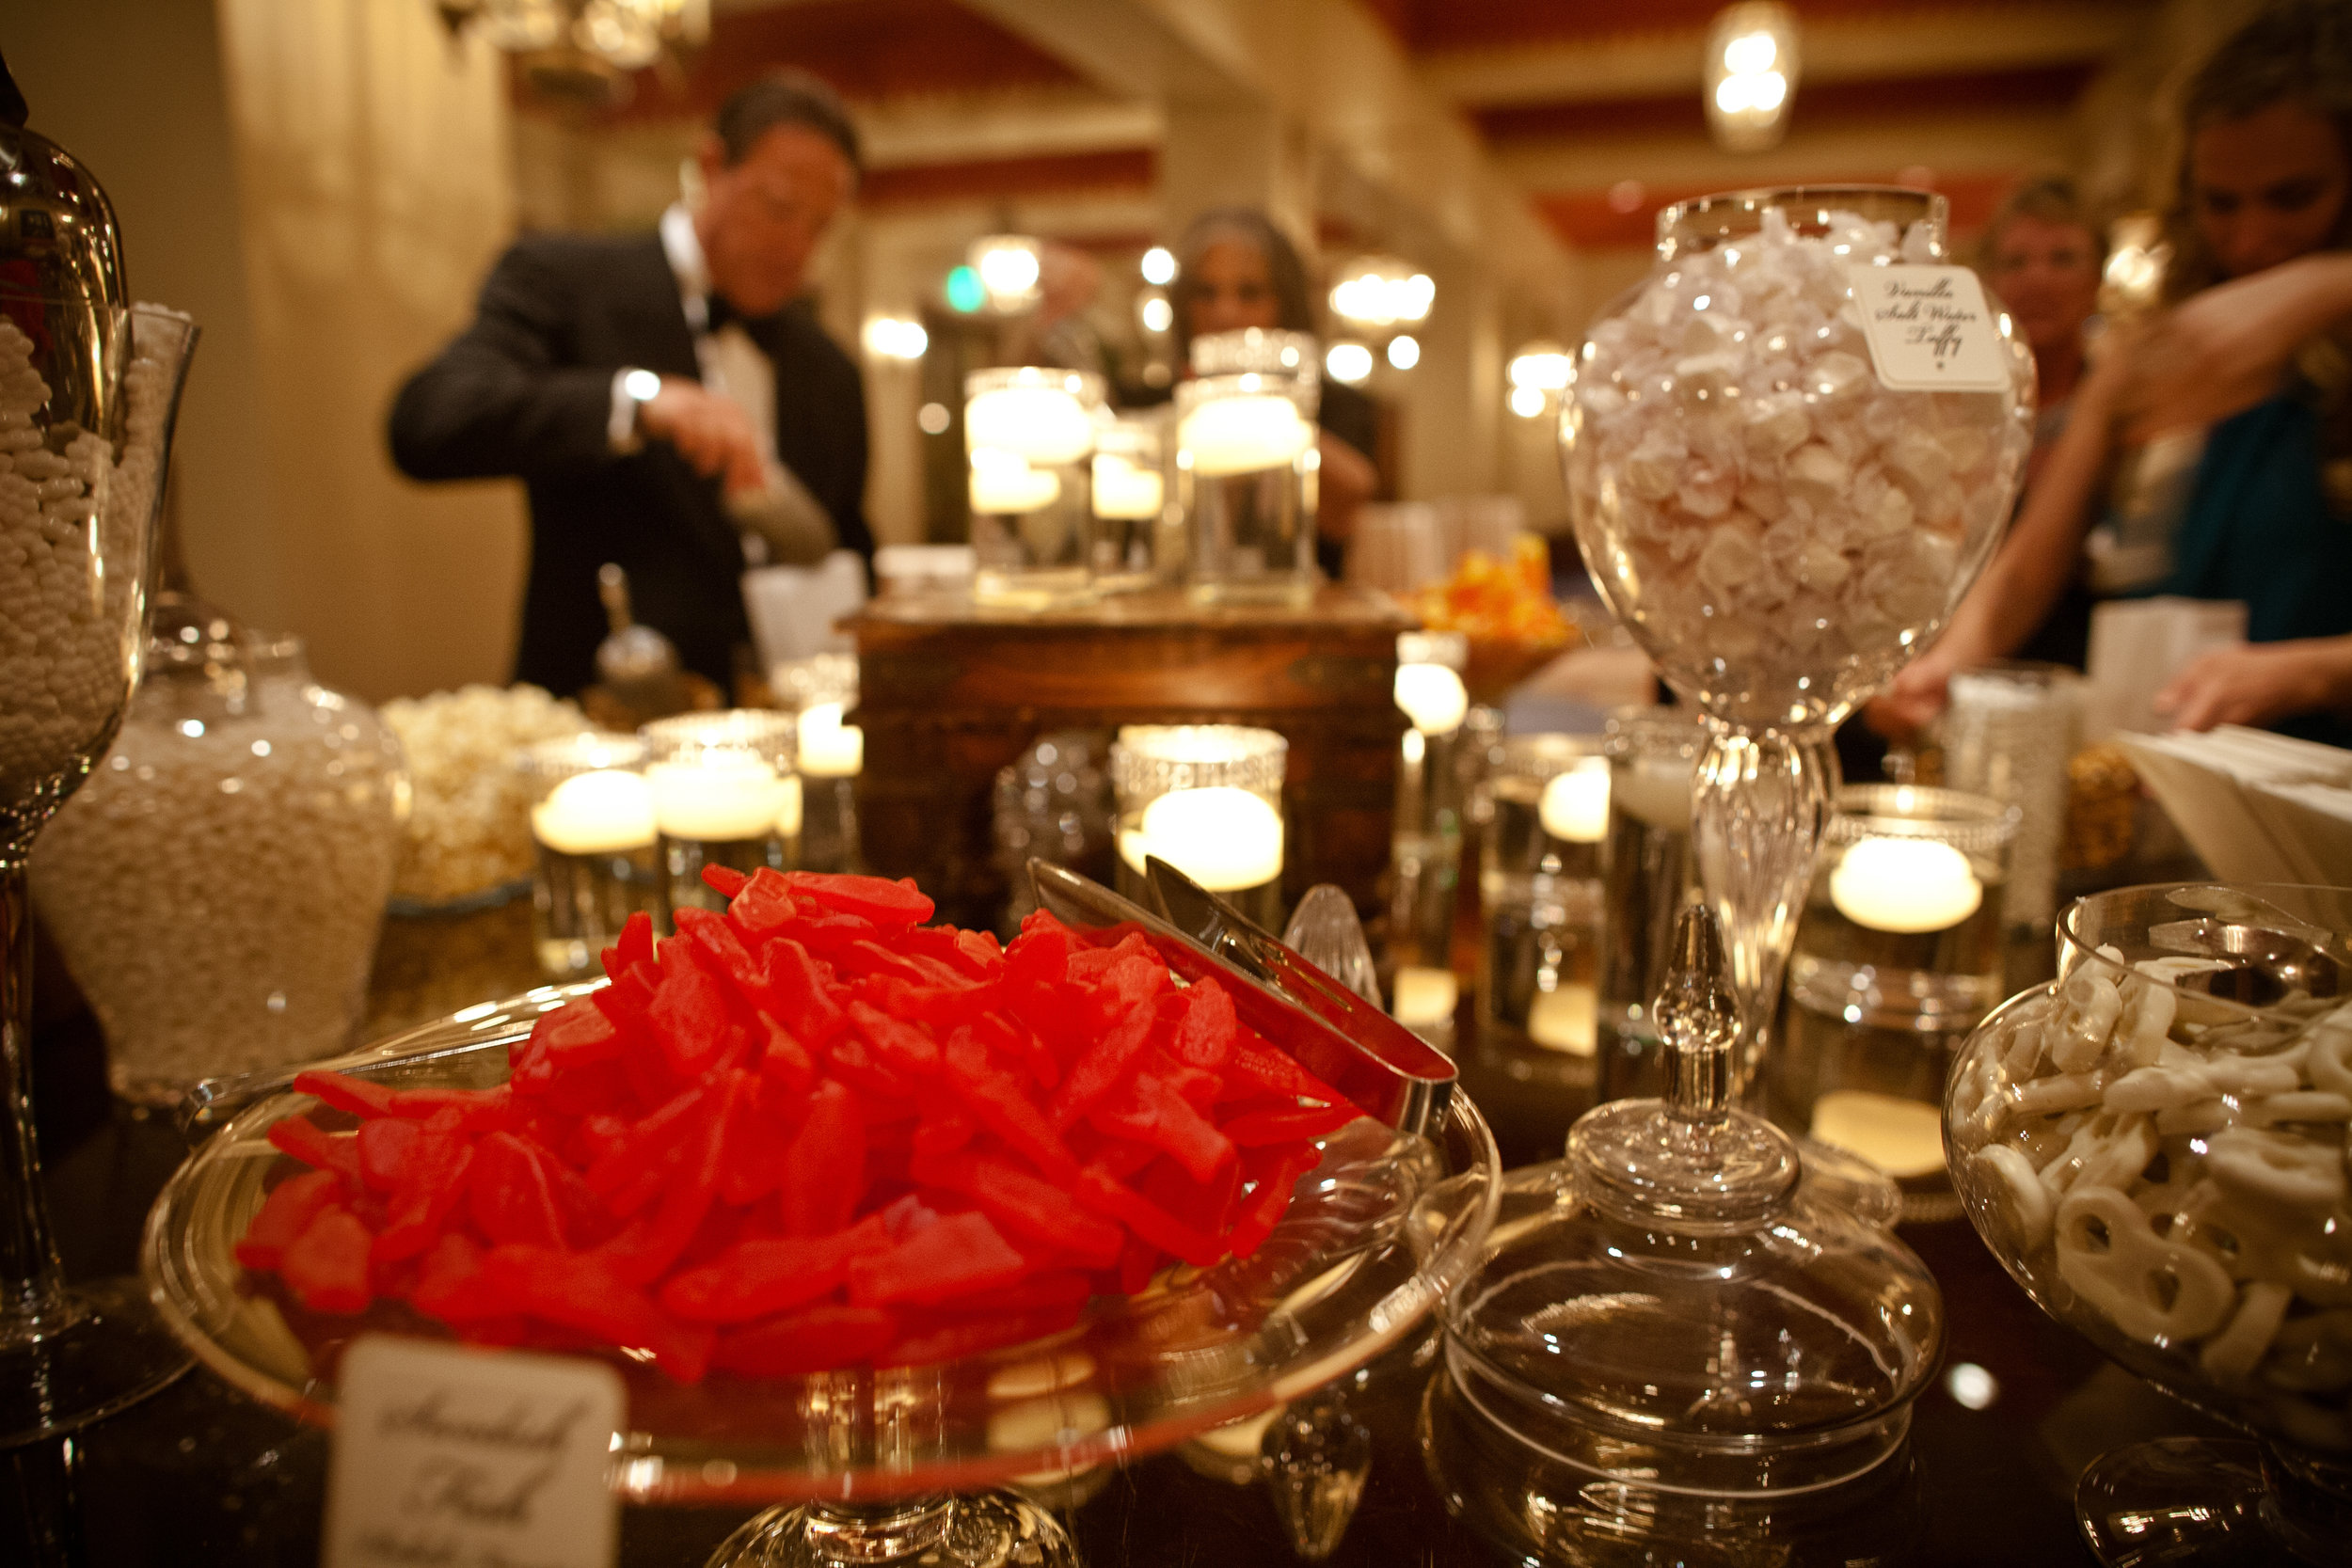 46 candy bar at wedding serve yourself candy bar candy for dessert Christine Johnson Photography Life Design Events.jpg